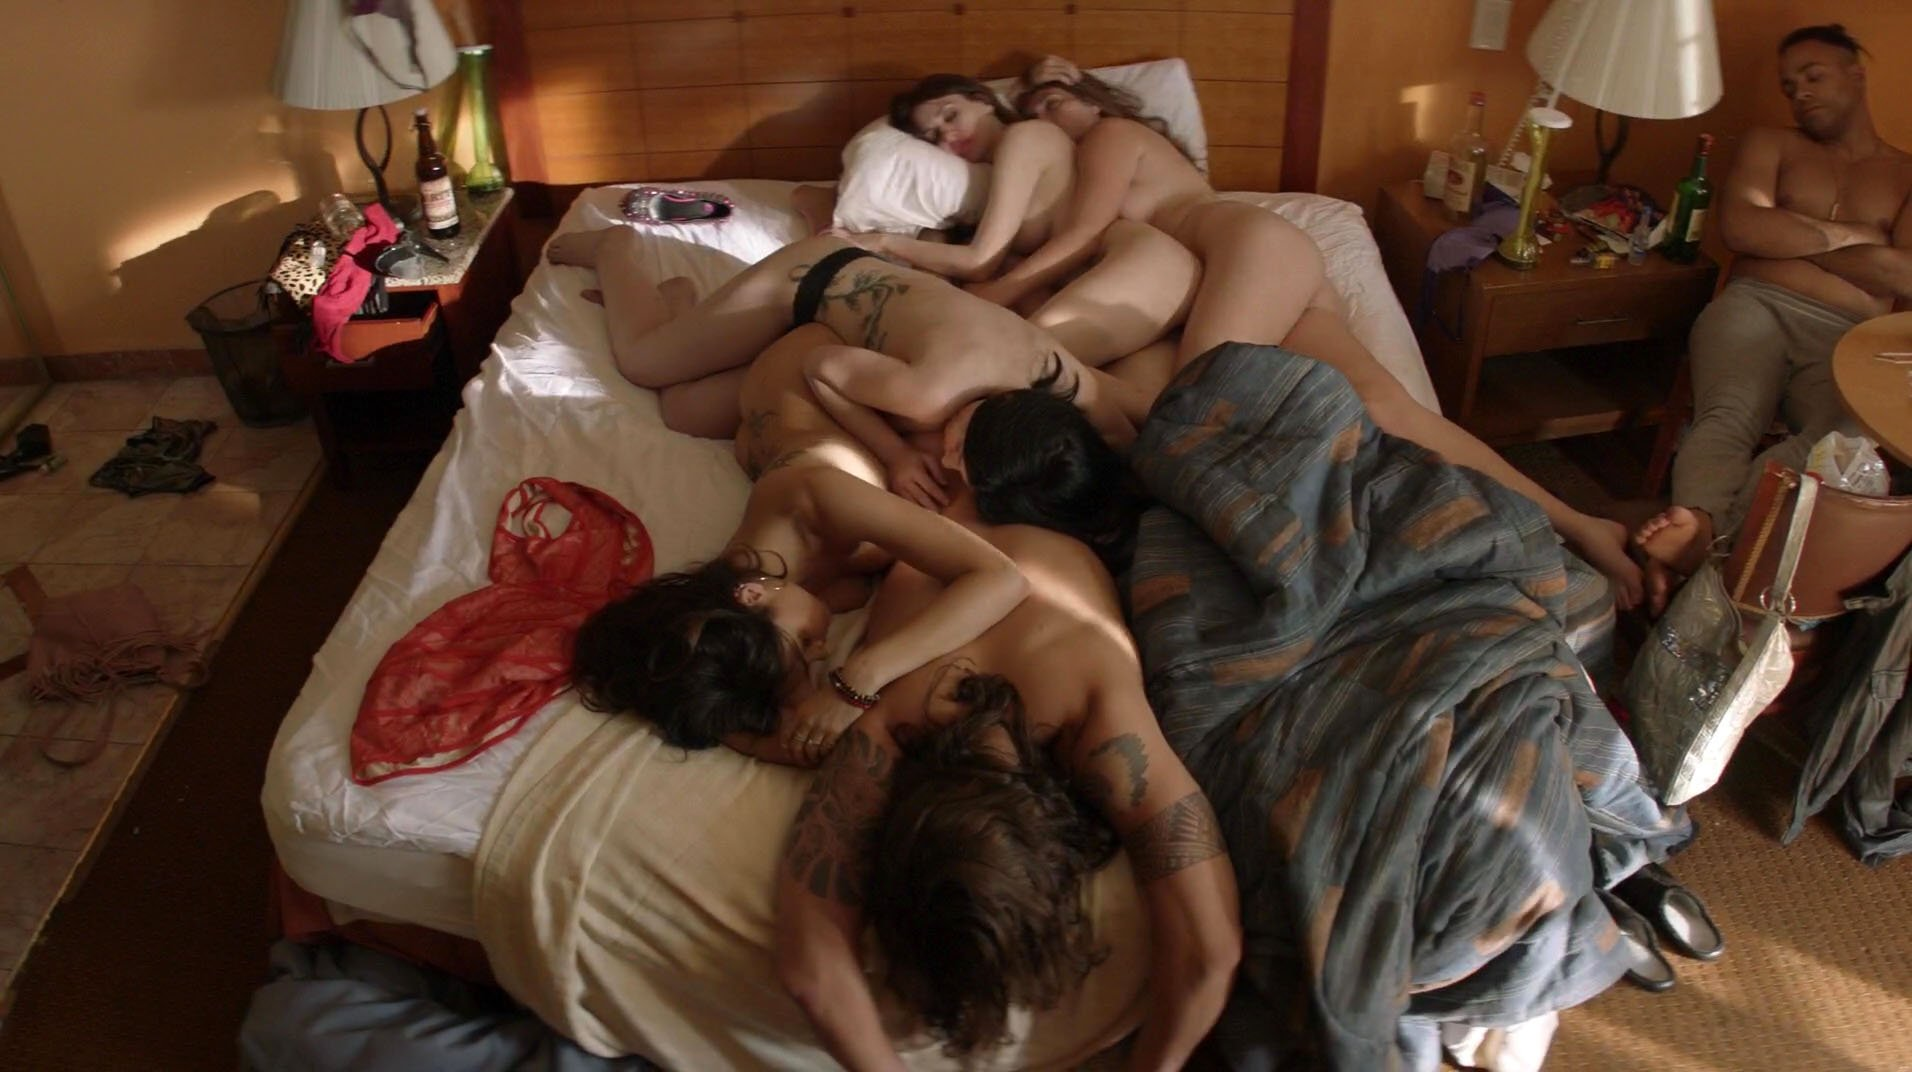 Paz de la huerta full frontal nudity sex scene - 2 9